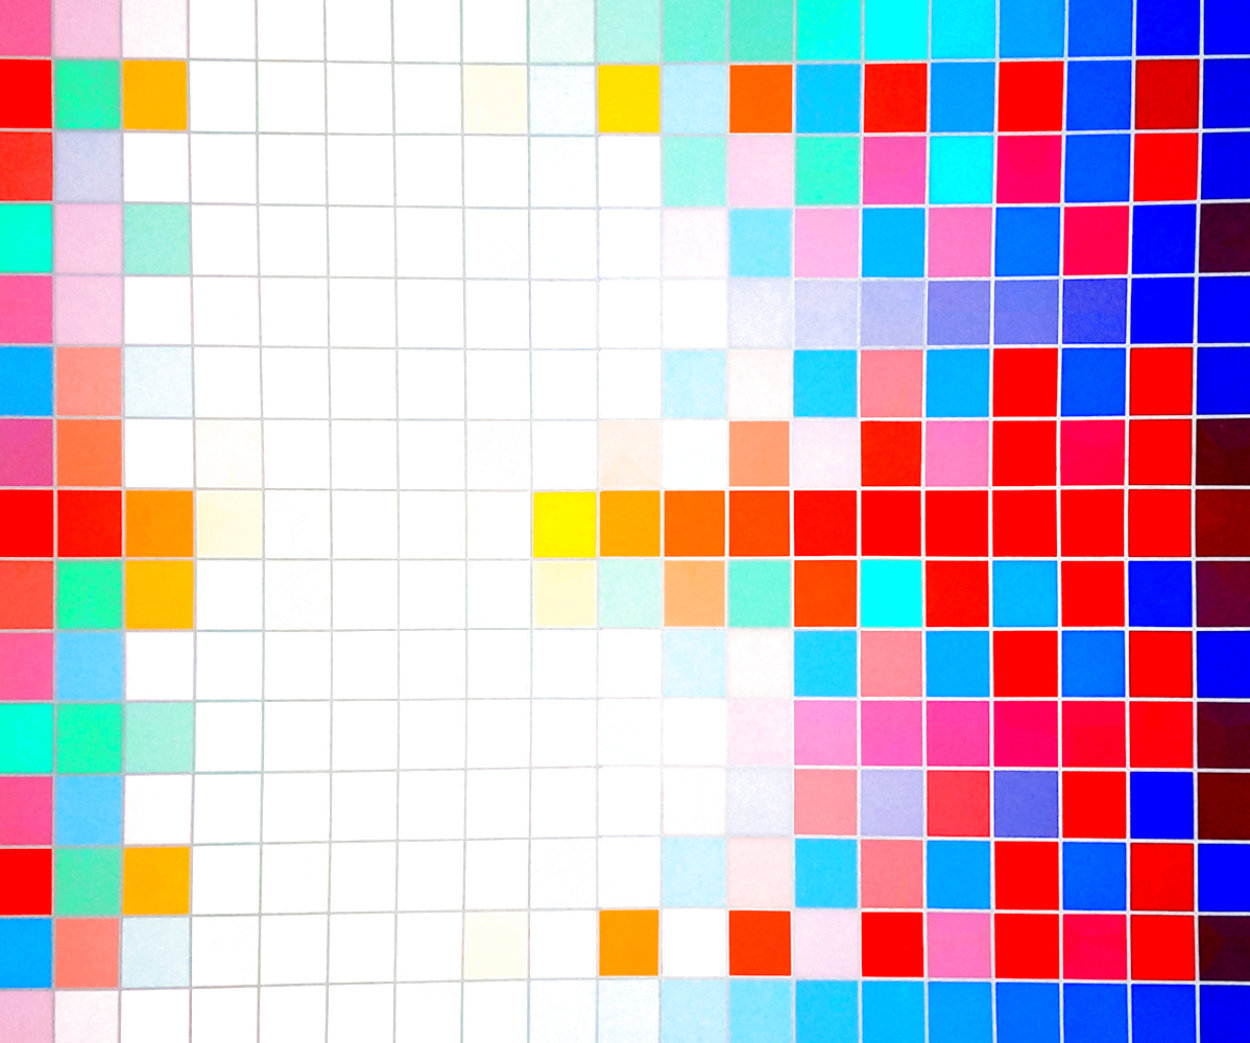 Square Wave AP Limited Edition Print by Yaacov Agam